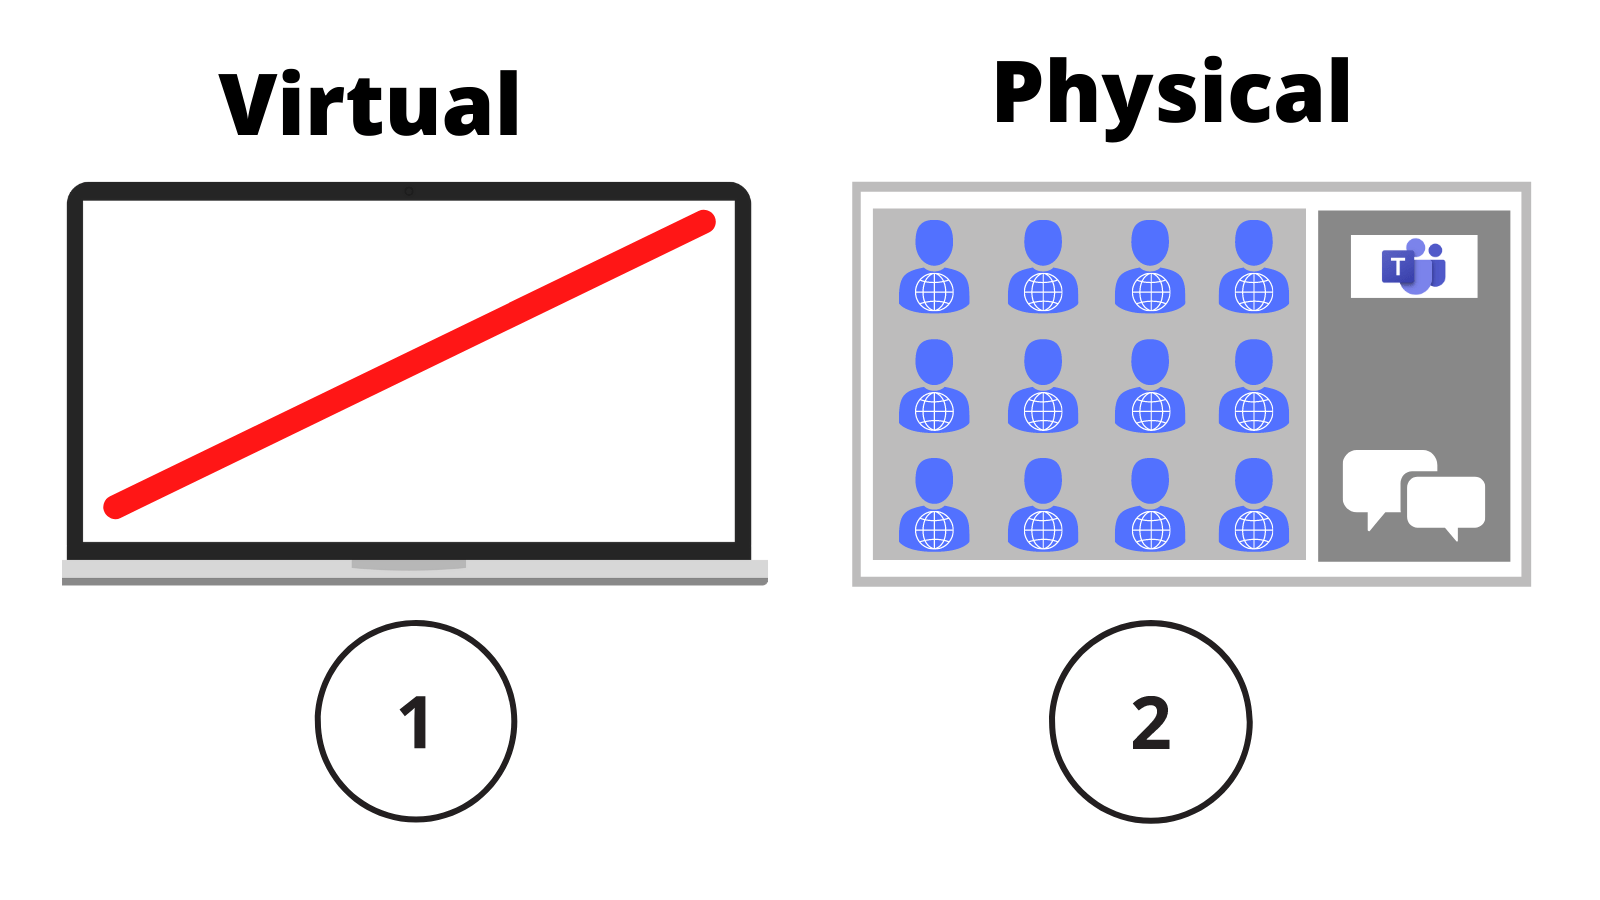 Two screens; one labelled '1, virtual' showing no content, the other labelled '2, physical' showing Teams with multiple attendees.